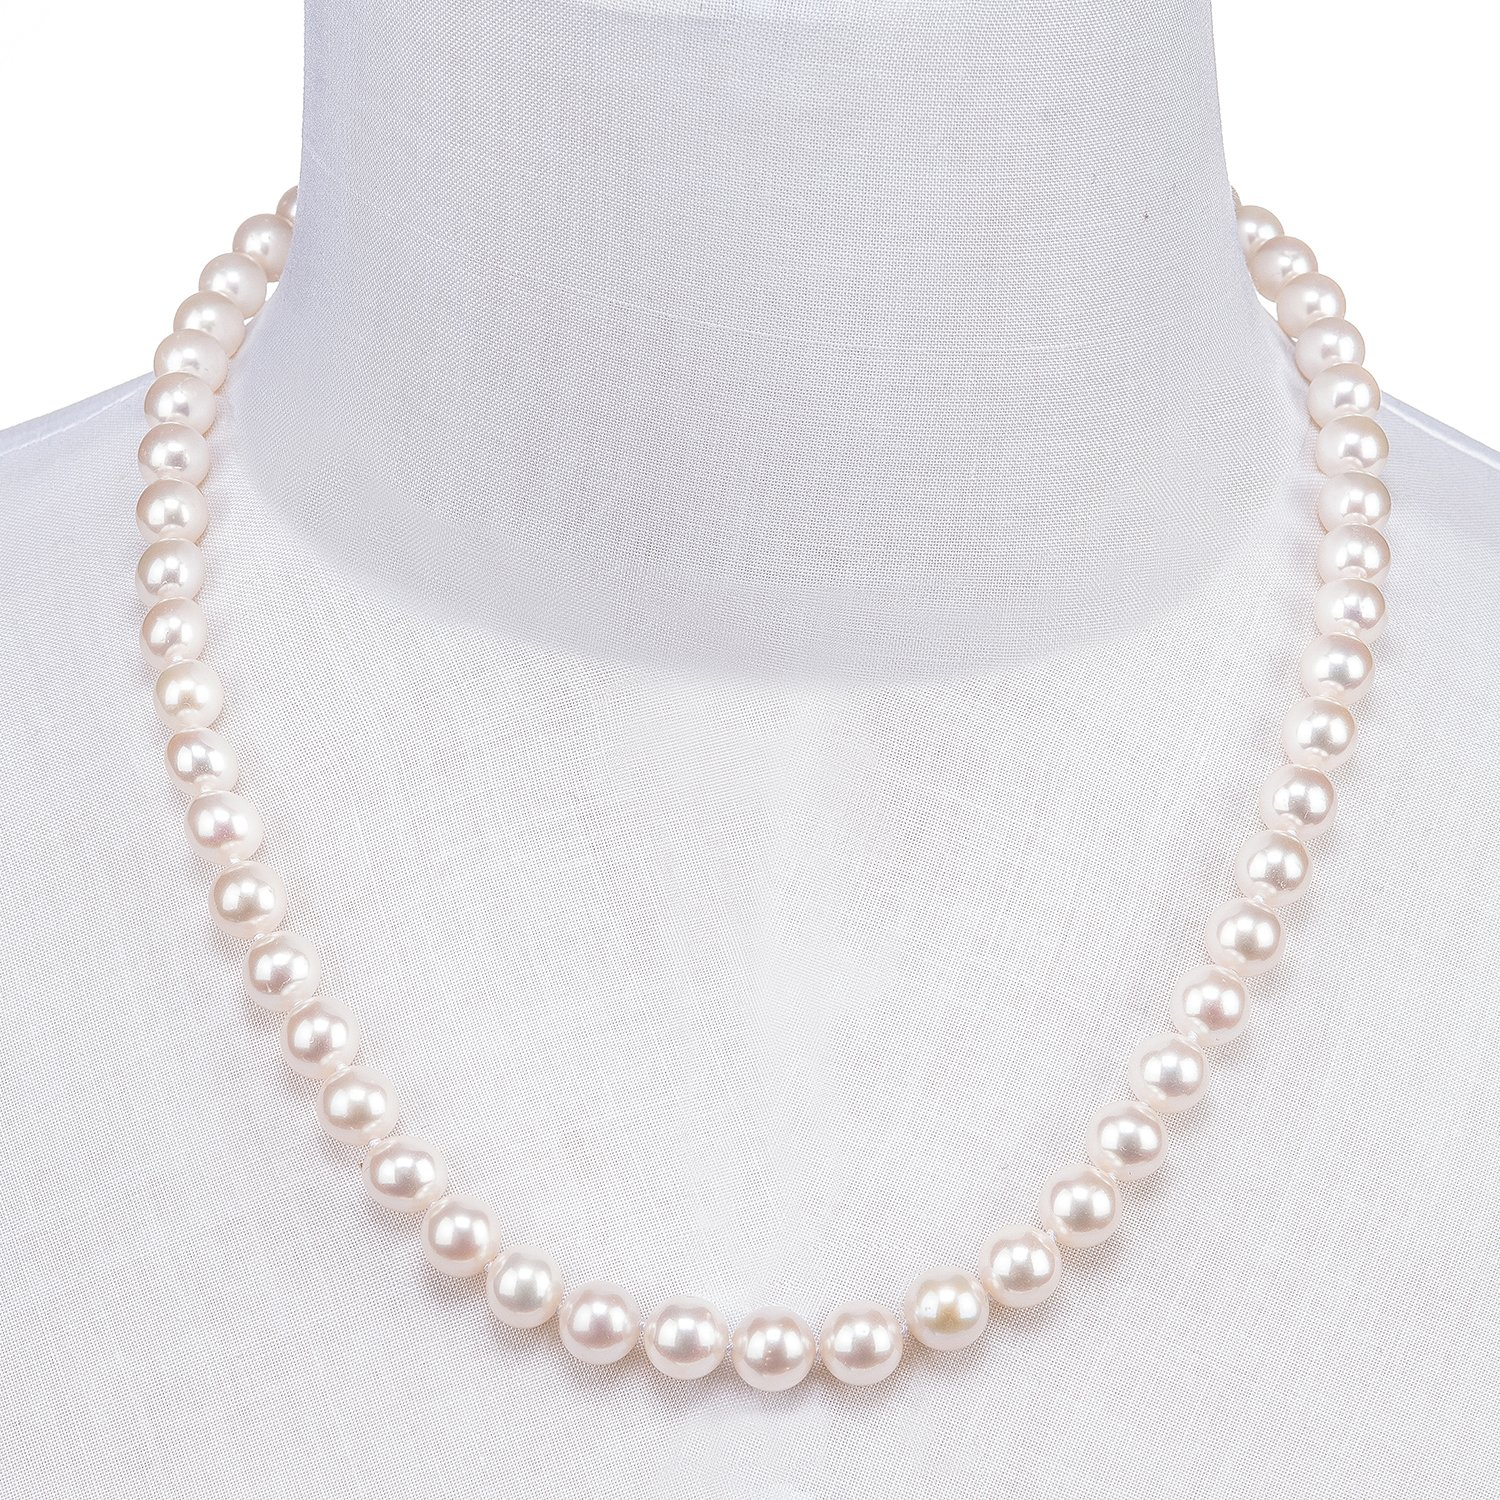 PAVOI 14K Gold AAA Handpicked White Freshwater Cultured Pearl Necklace 18 Princess Length